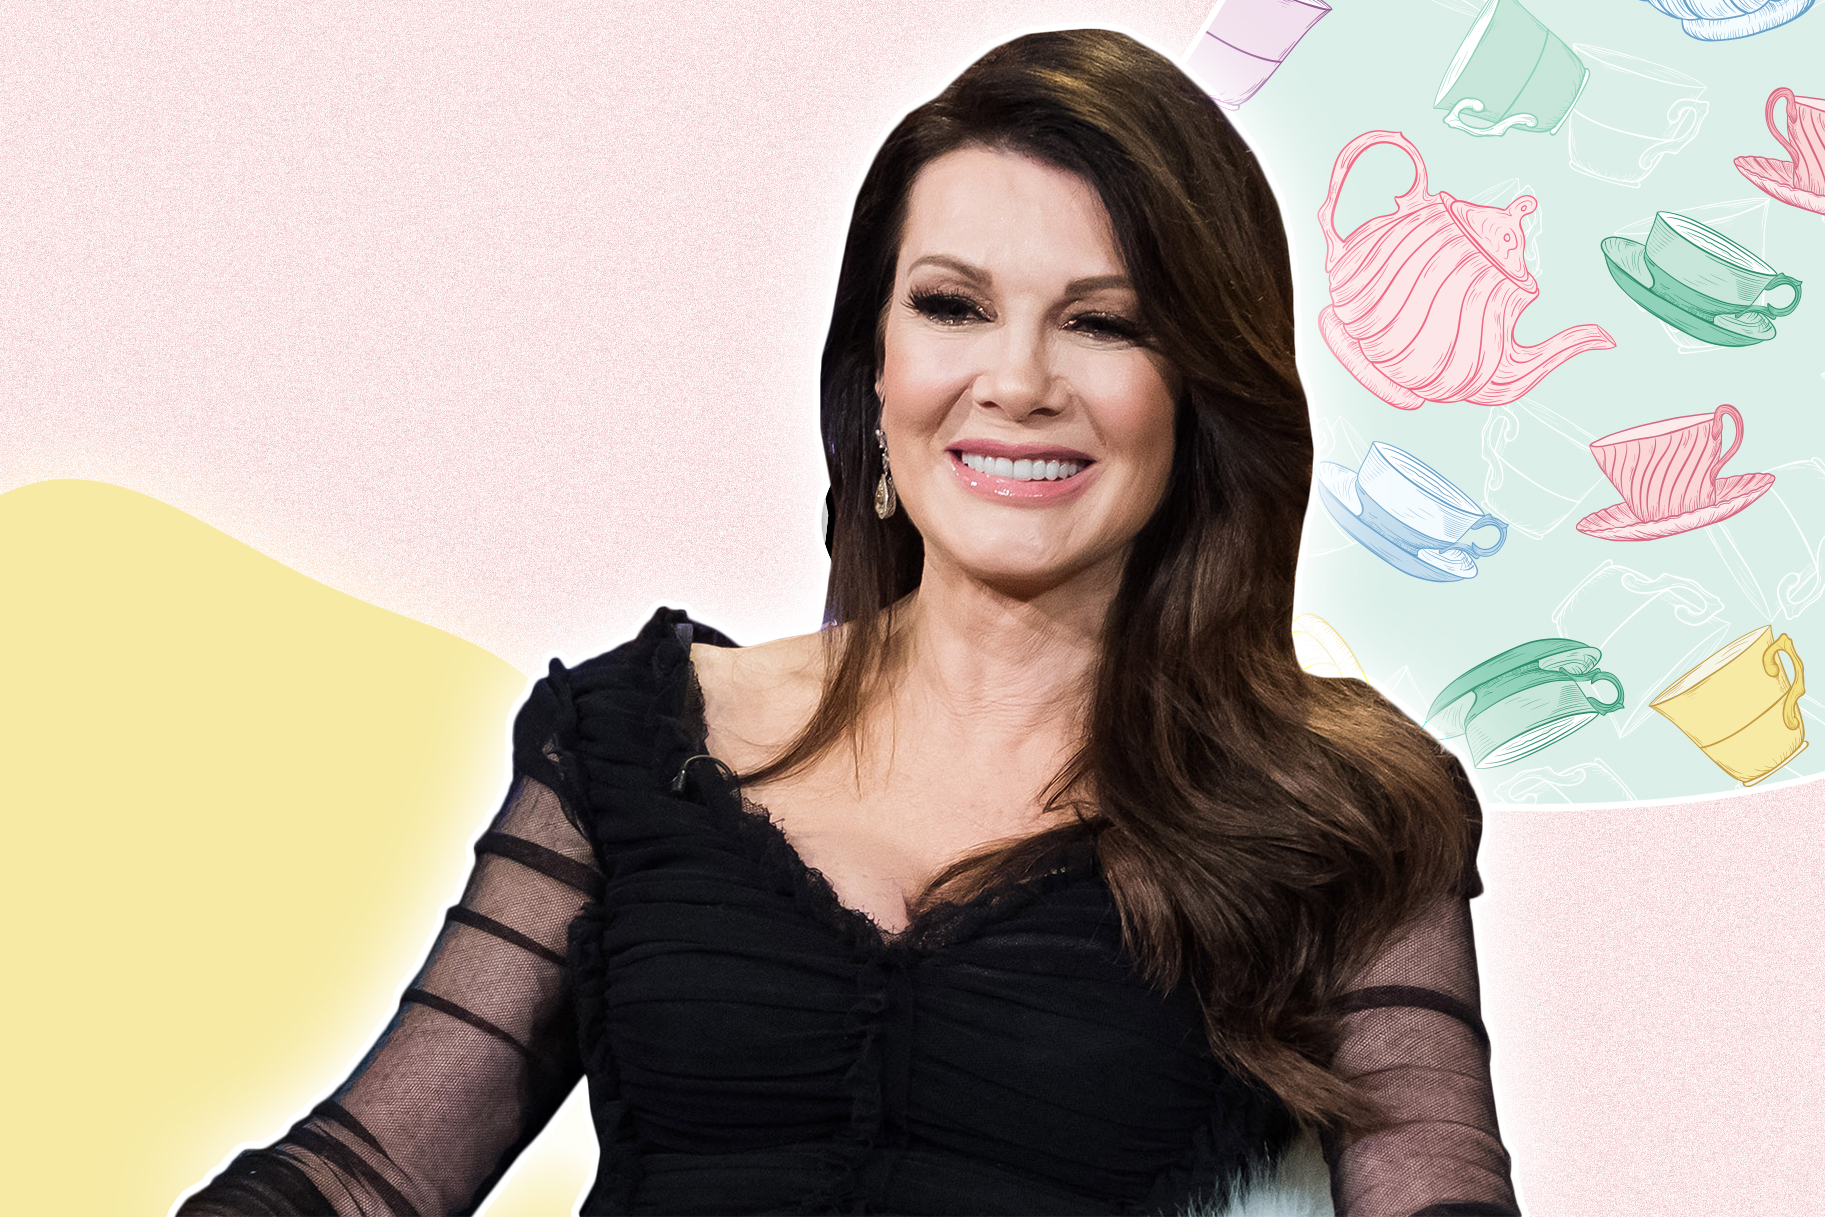 lisa-vanderpump-rhobh-tea.jpg